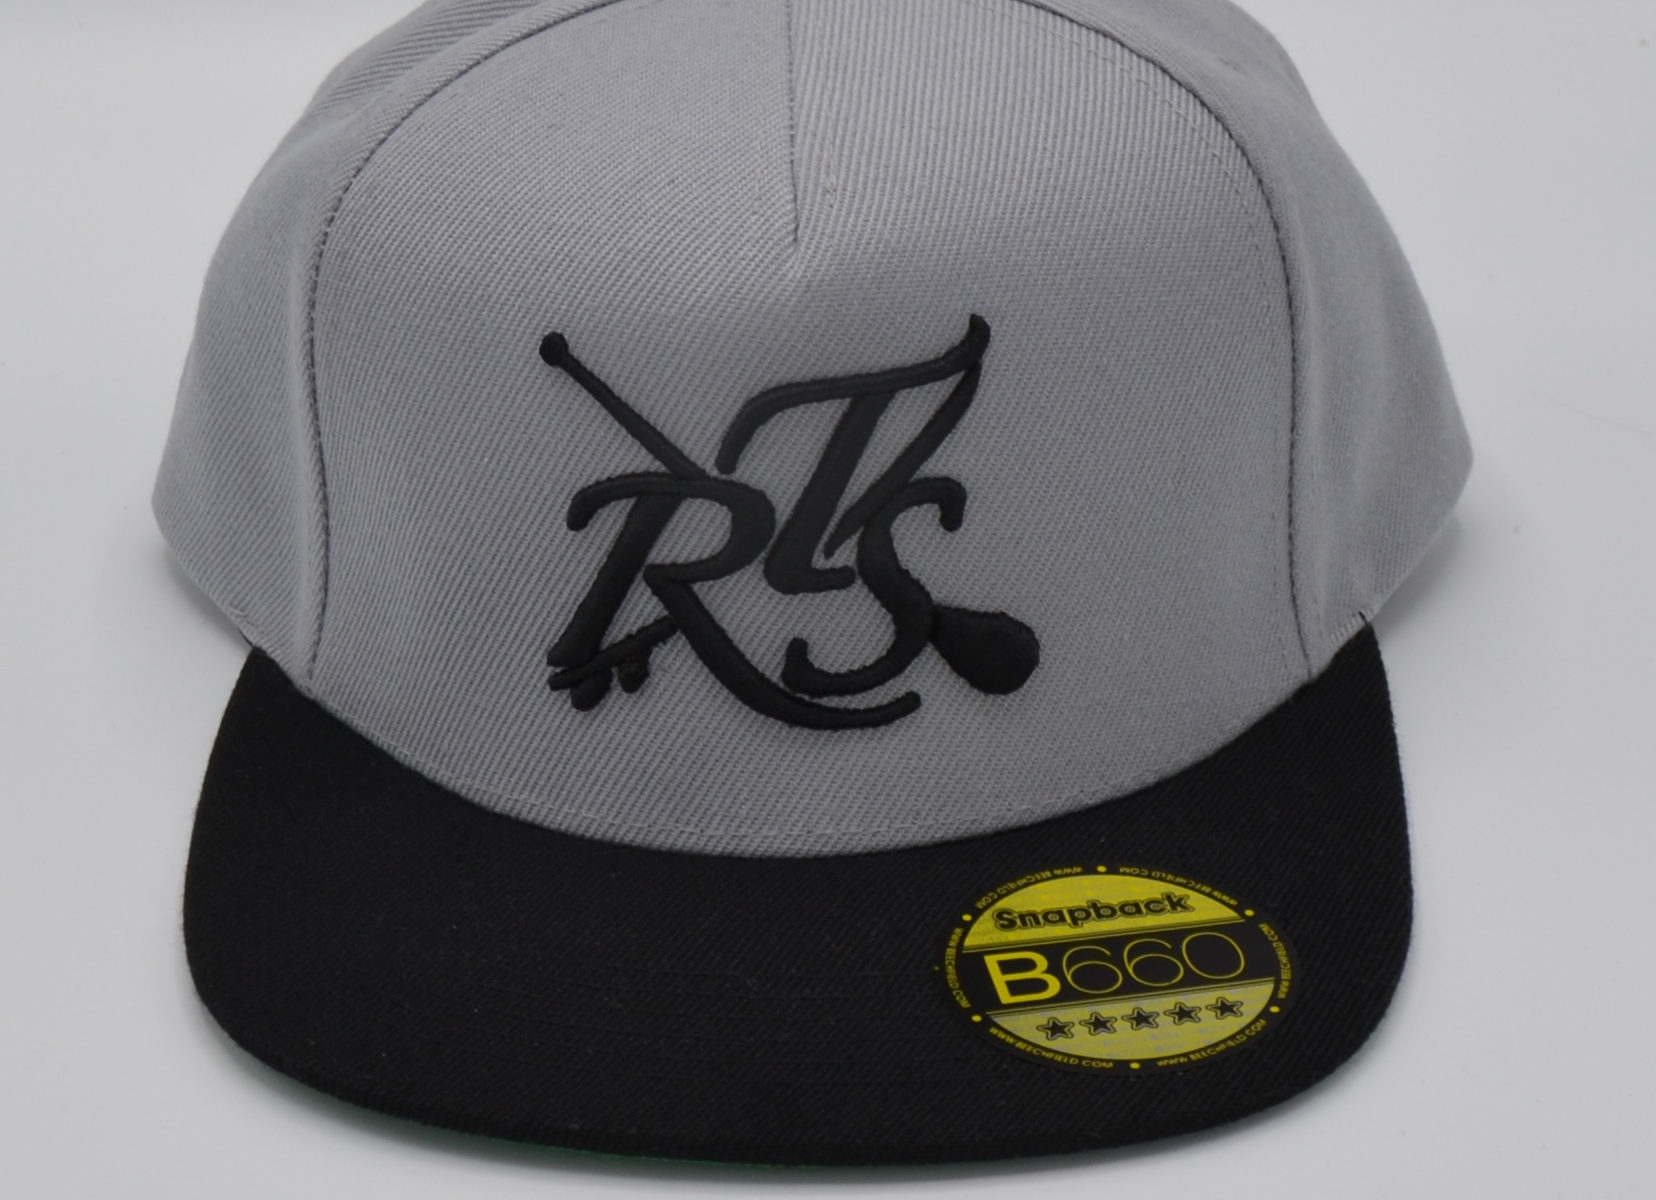 base cap rail saver tape snap back cap